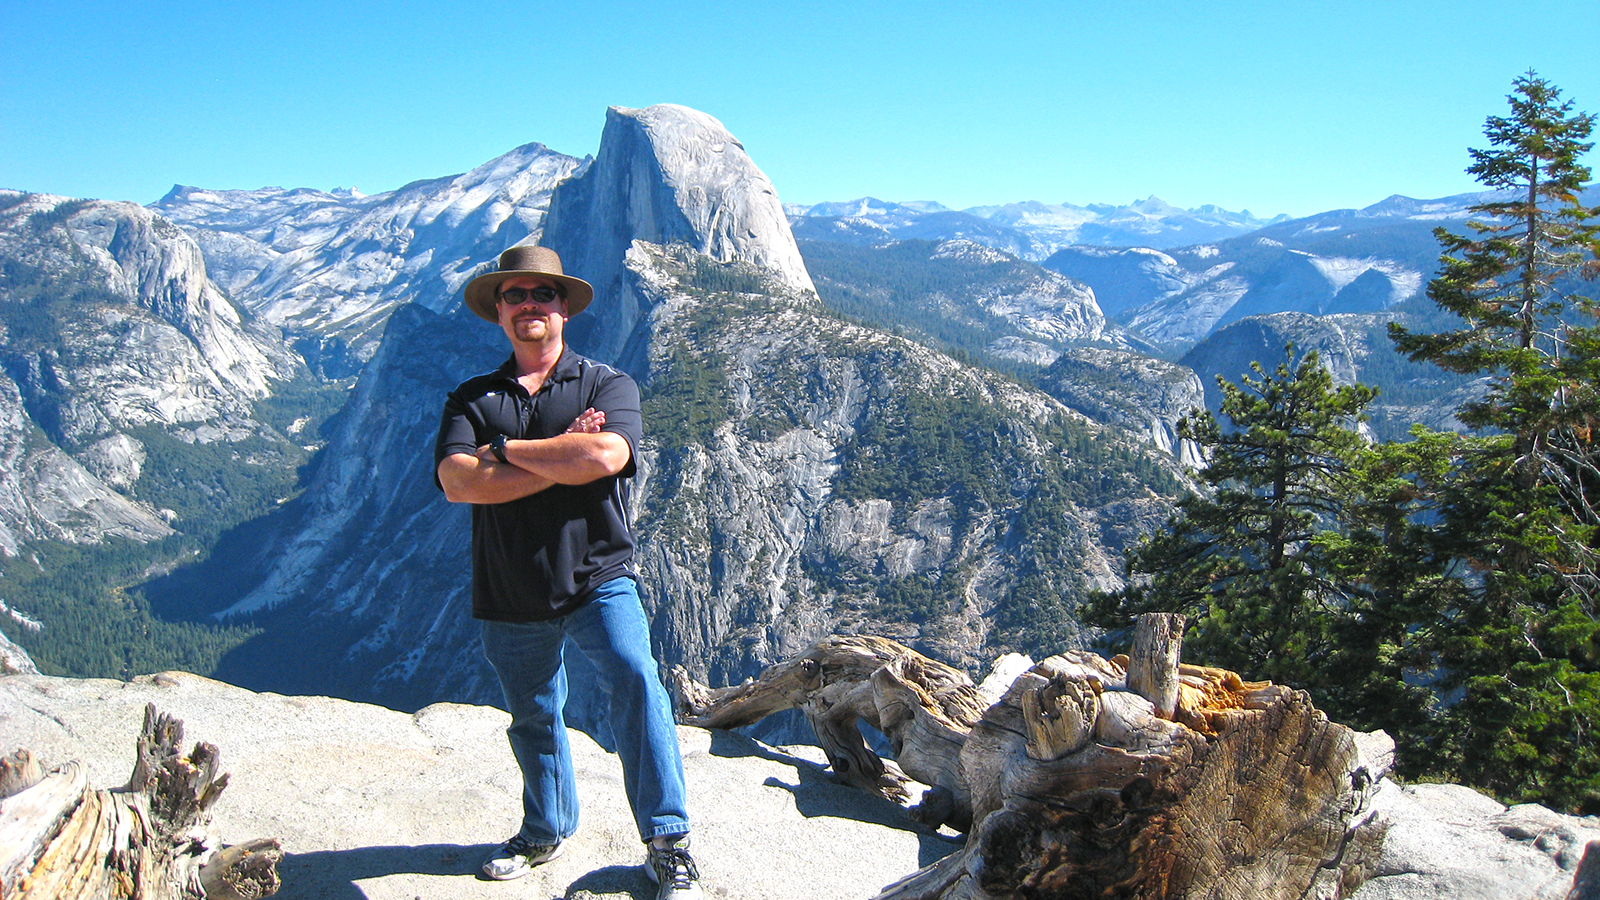 After my hike up Half Dome in Yosemite